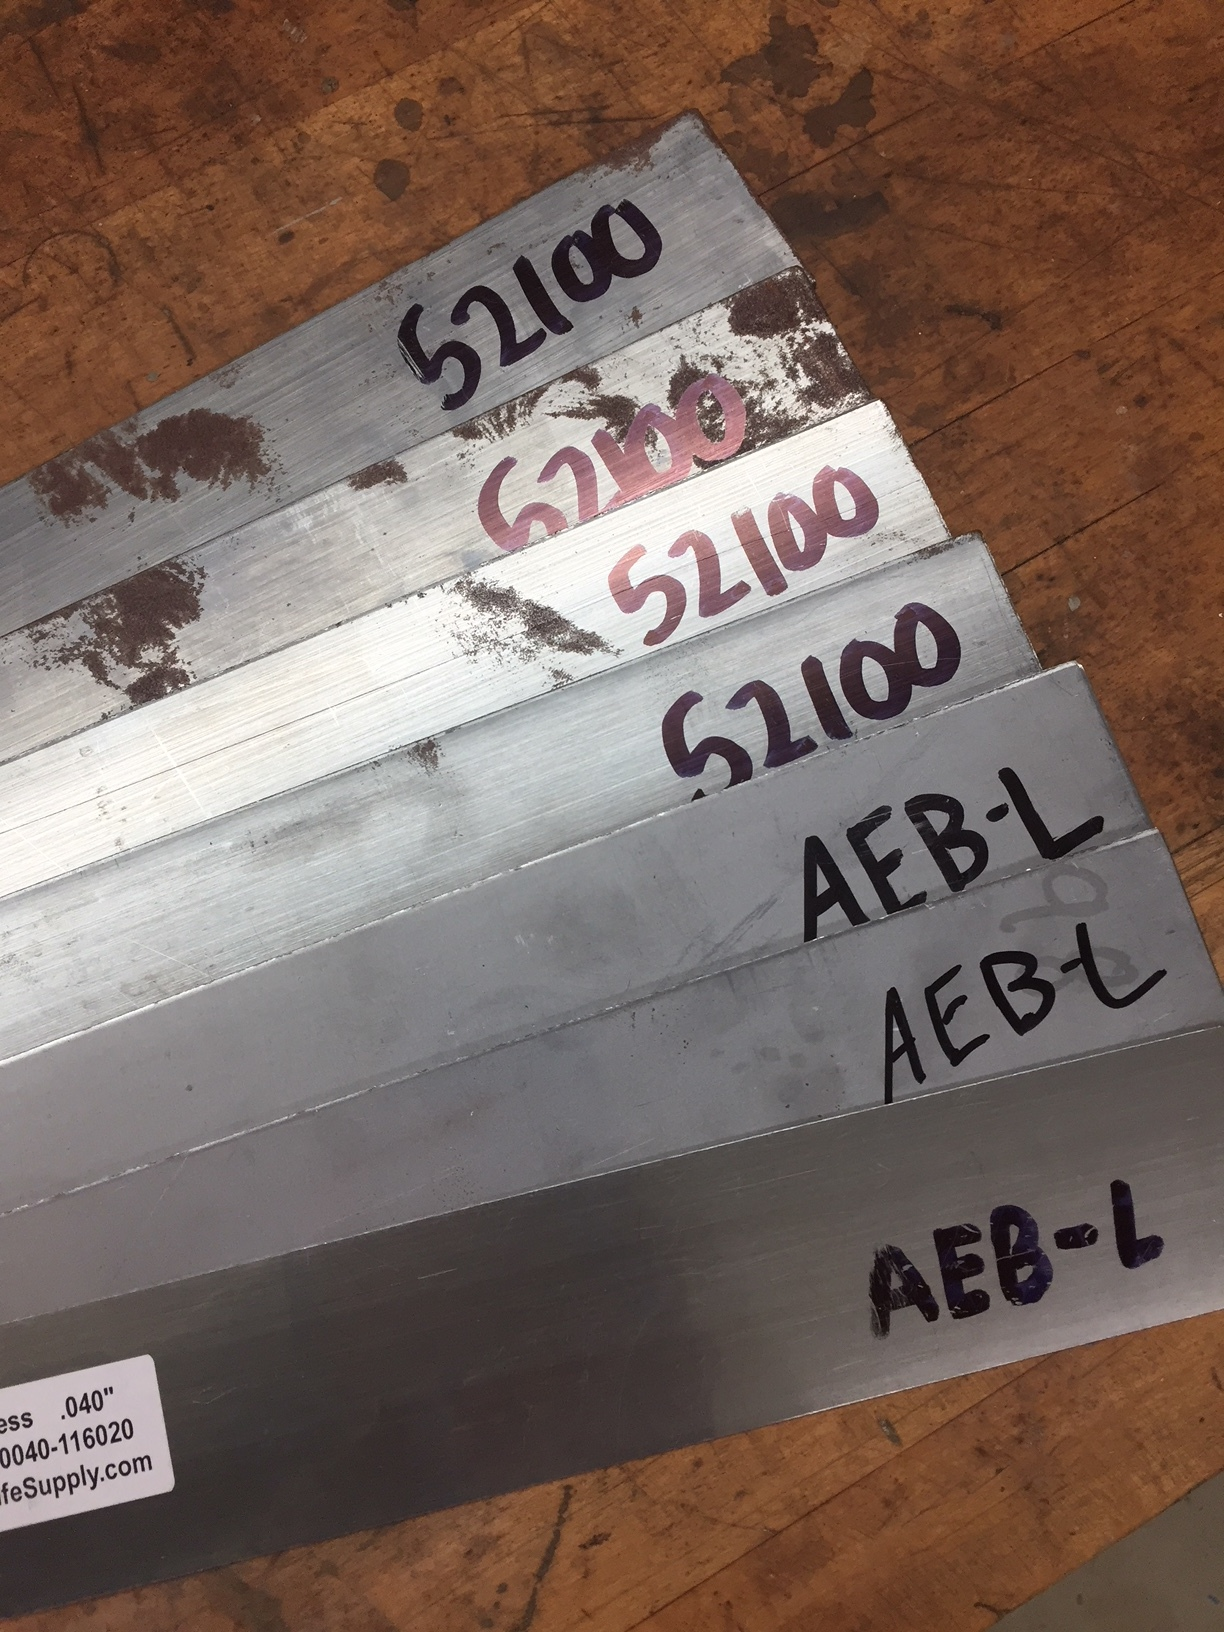 Steel prior to becoming a knife.